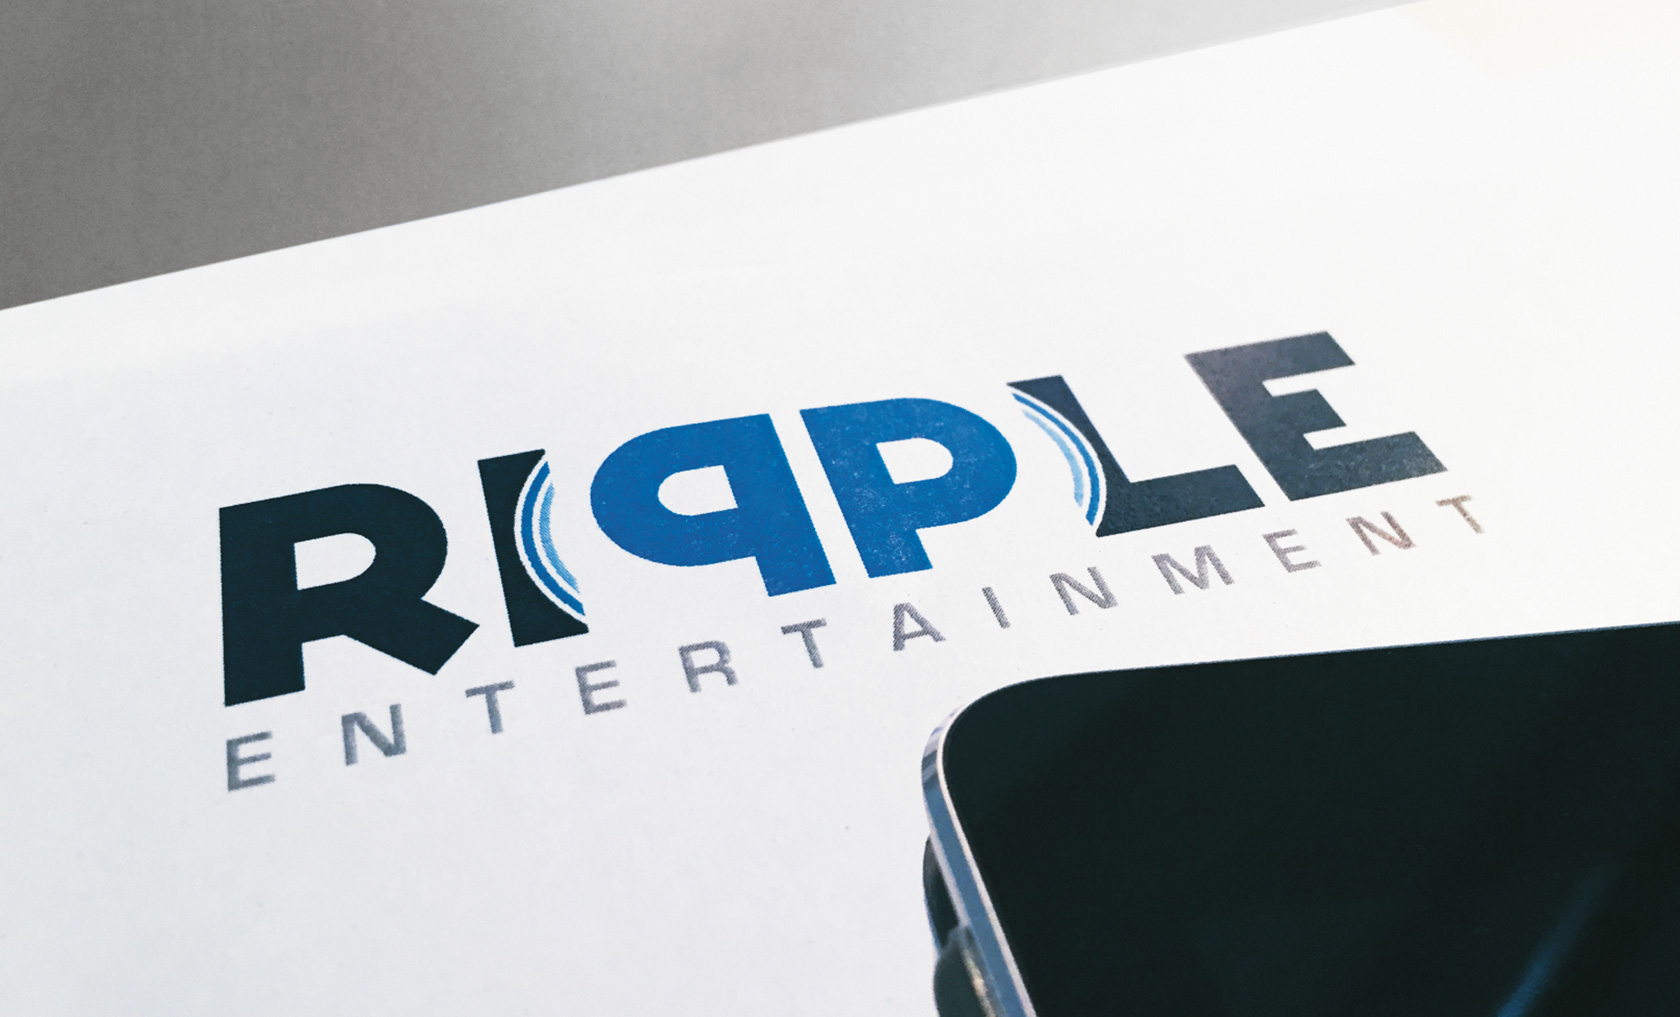 Ripple Entertainment